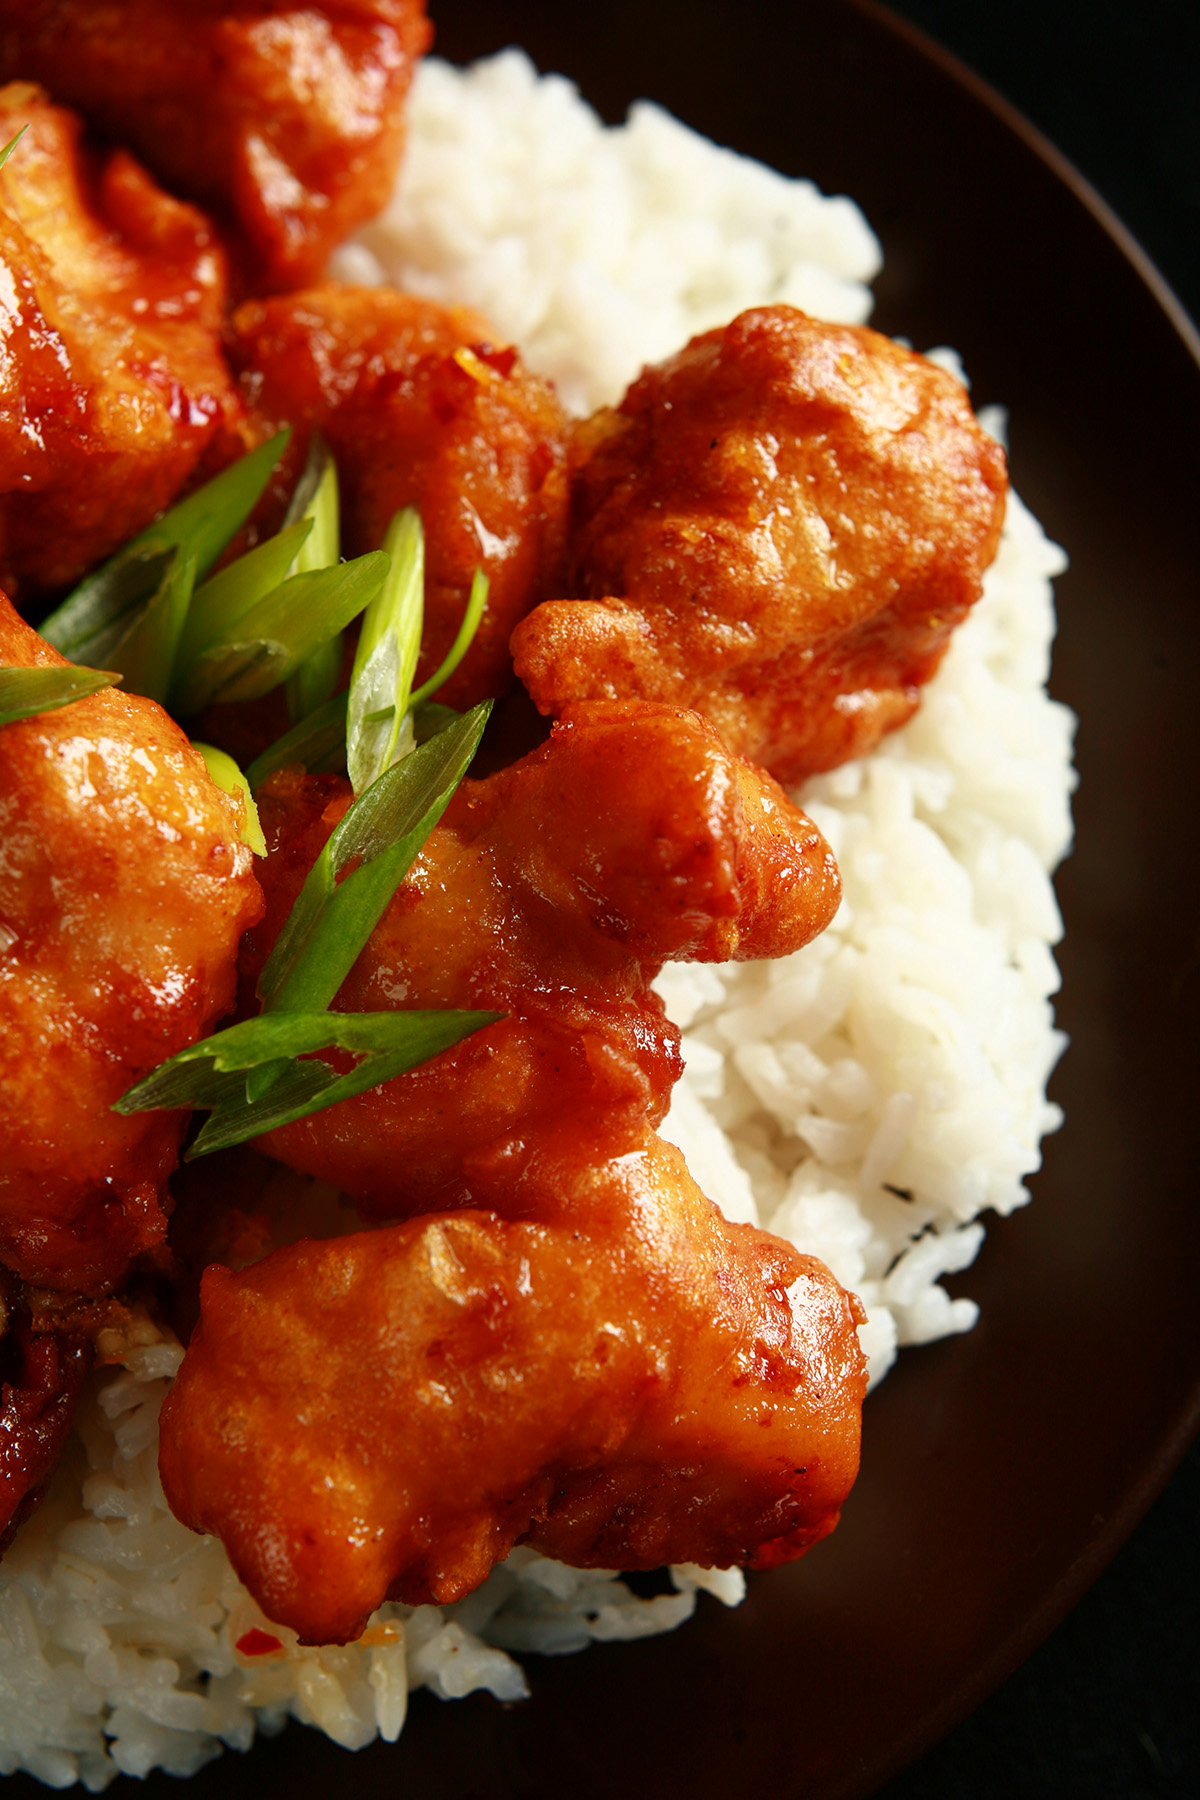 A plate of rice, covered with orange chicken: Chunks of battered and deep fried chicken coated in a glossy orange sauce, garnished with sliced green onions.